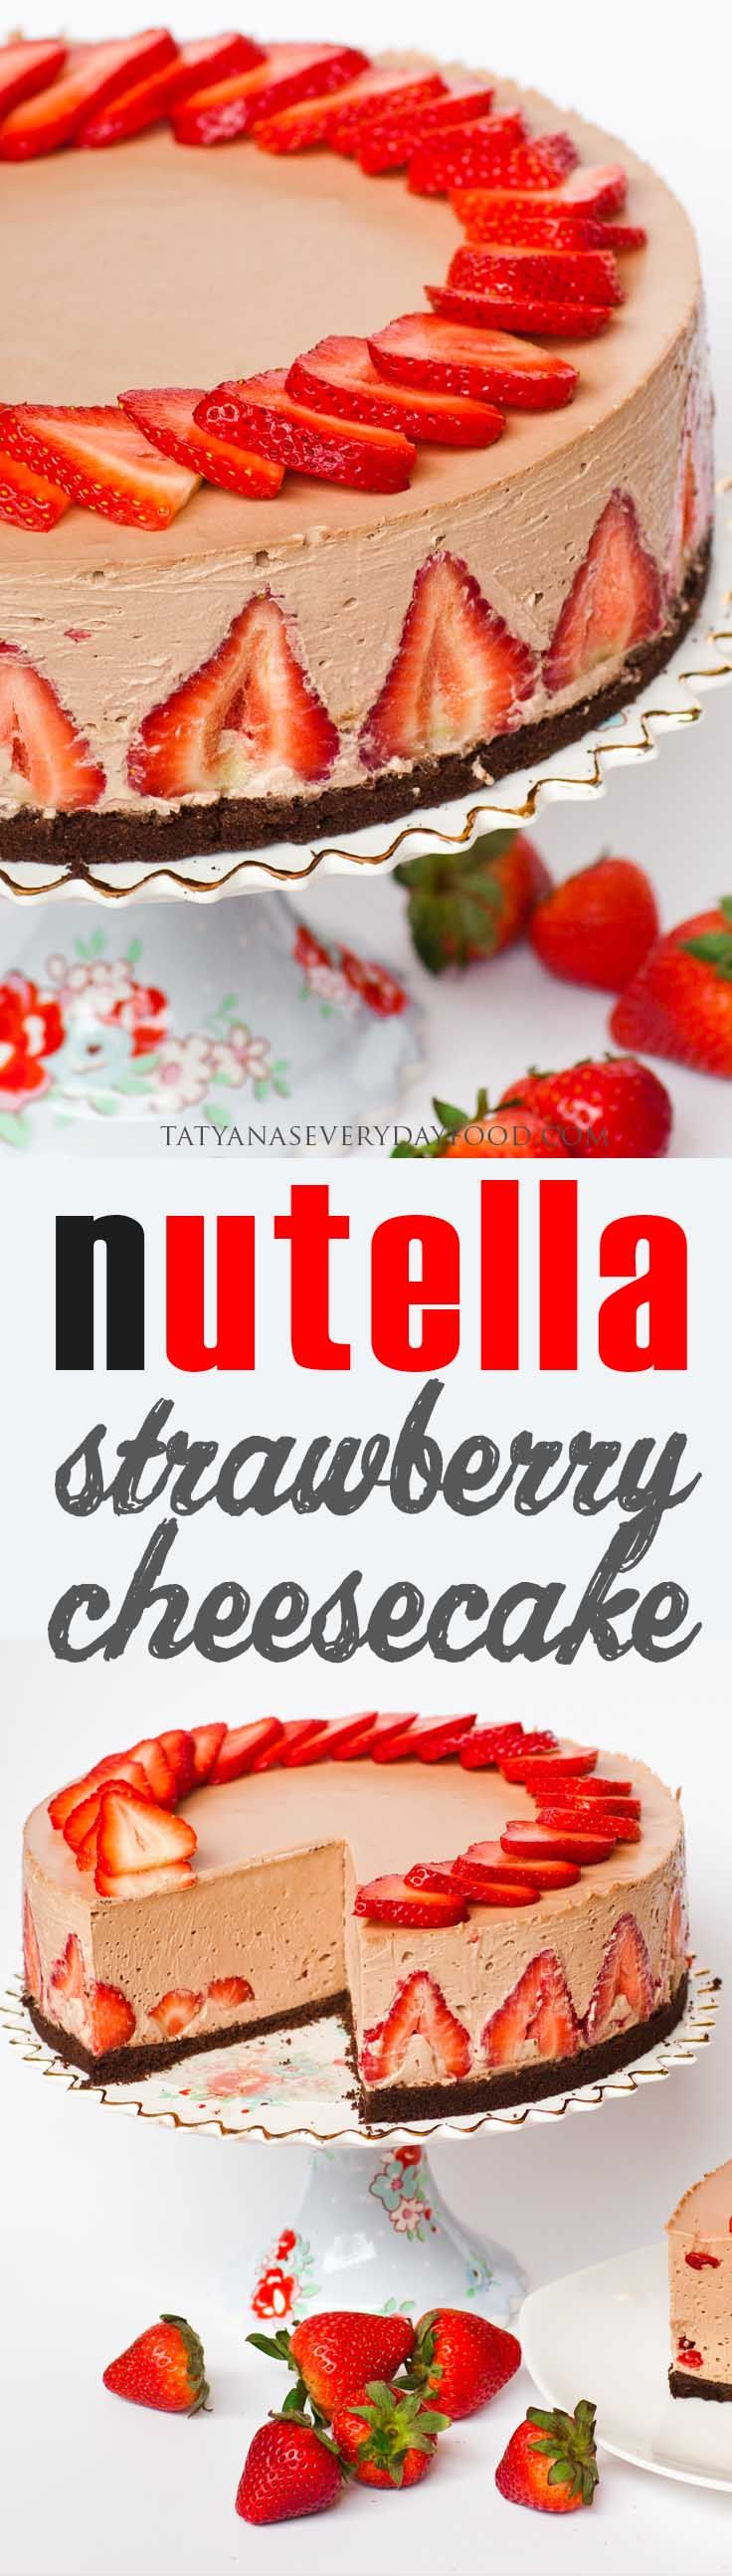 What can make a cheesecake go from good to fantastic? Nutella and strawberries! This ultra-rich no-bake strawberry and Nutella cheesecake with a chocolate crust is velvety smooth and melt-in-your-mouth good! If you're a fan of chocolate and strawberries, this is the ultimate cheesecake for you! Watch my video recipe for the strawberry garnishes!